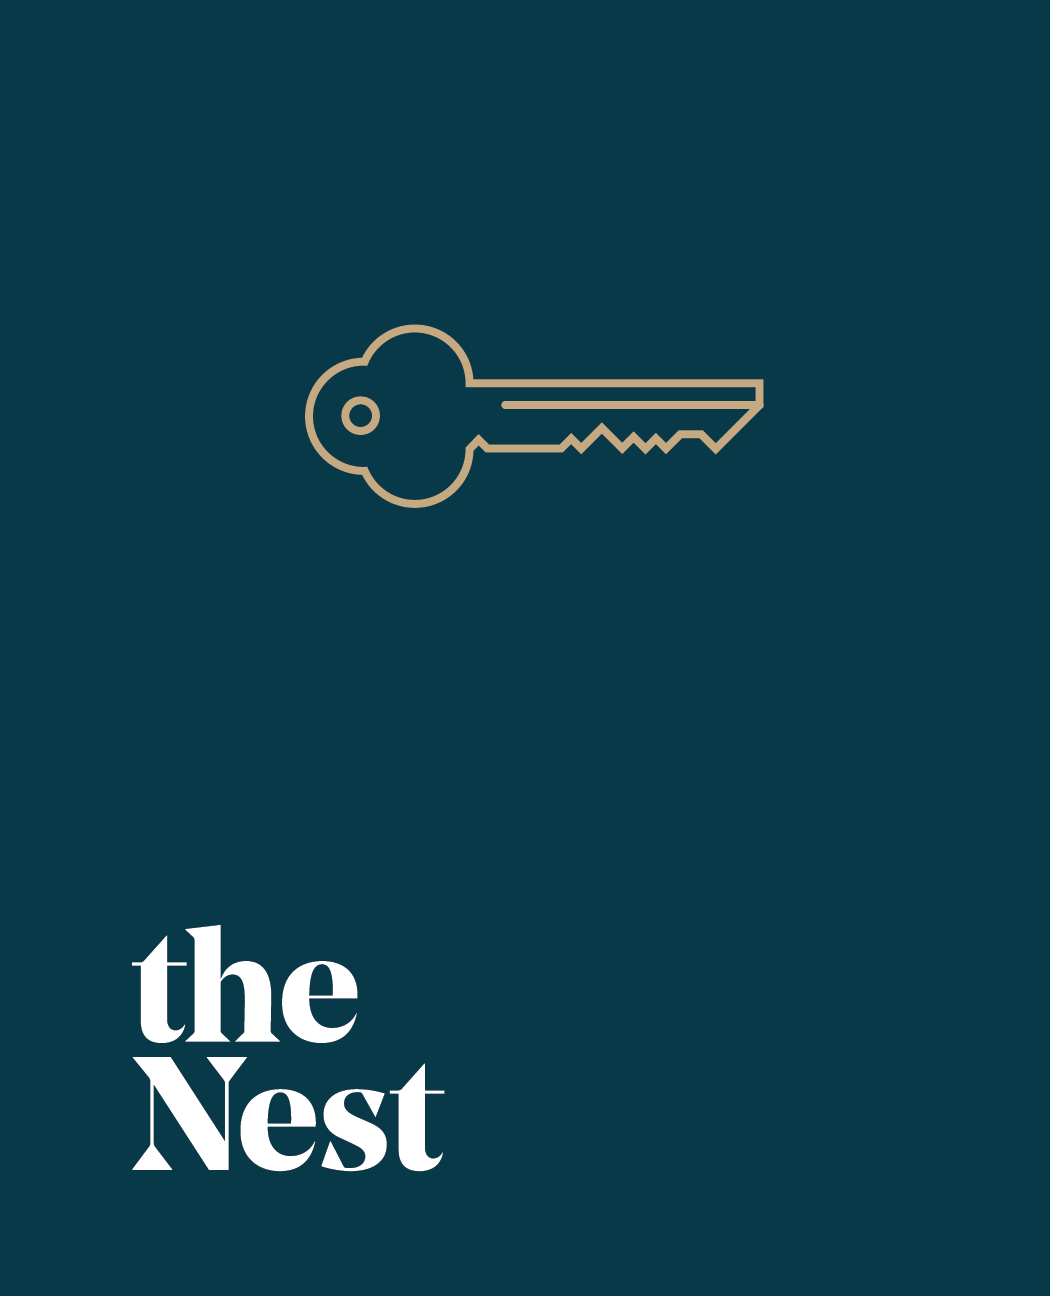 the Nest: Green